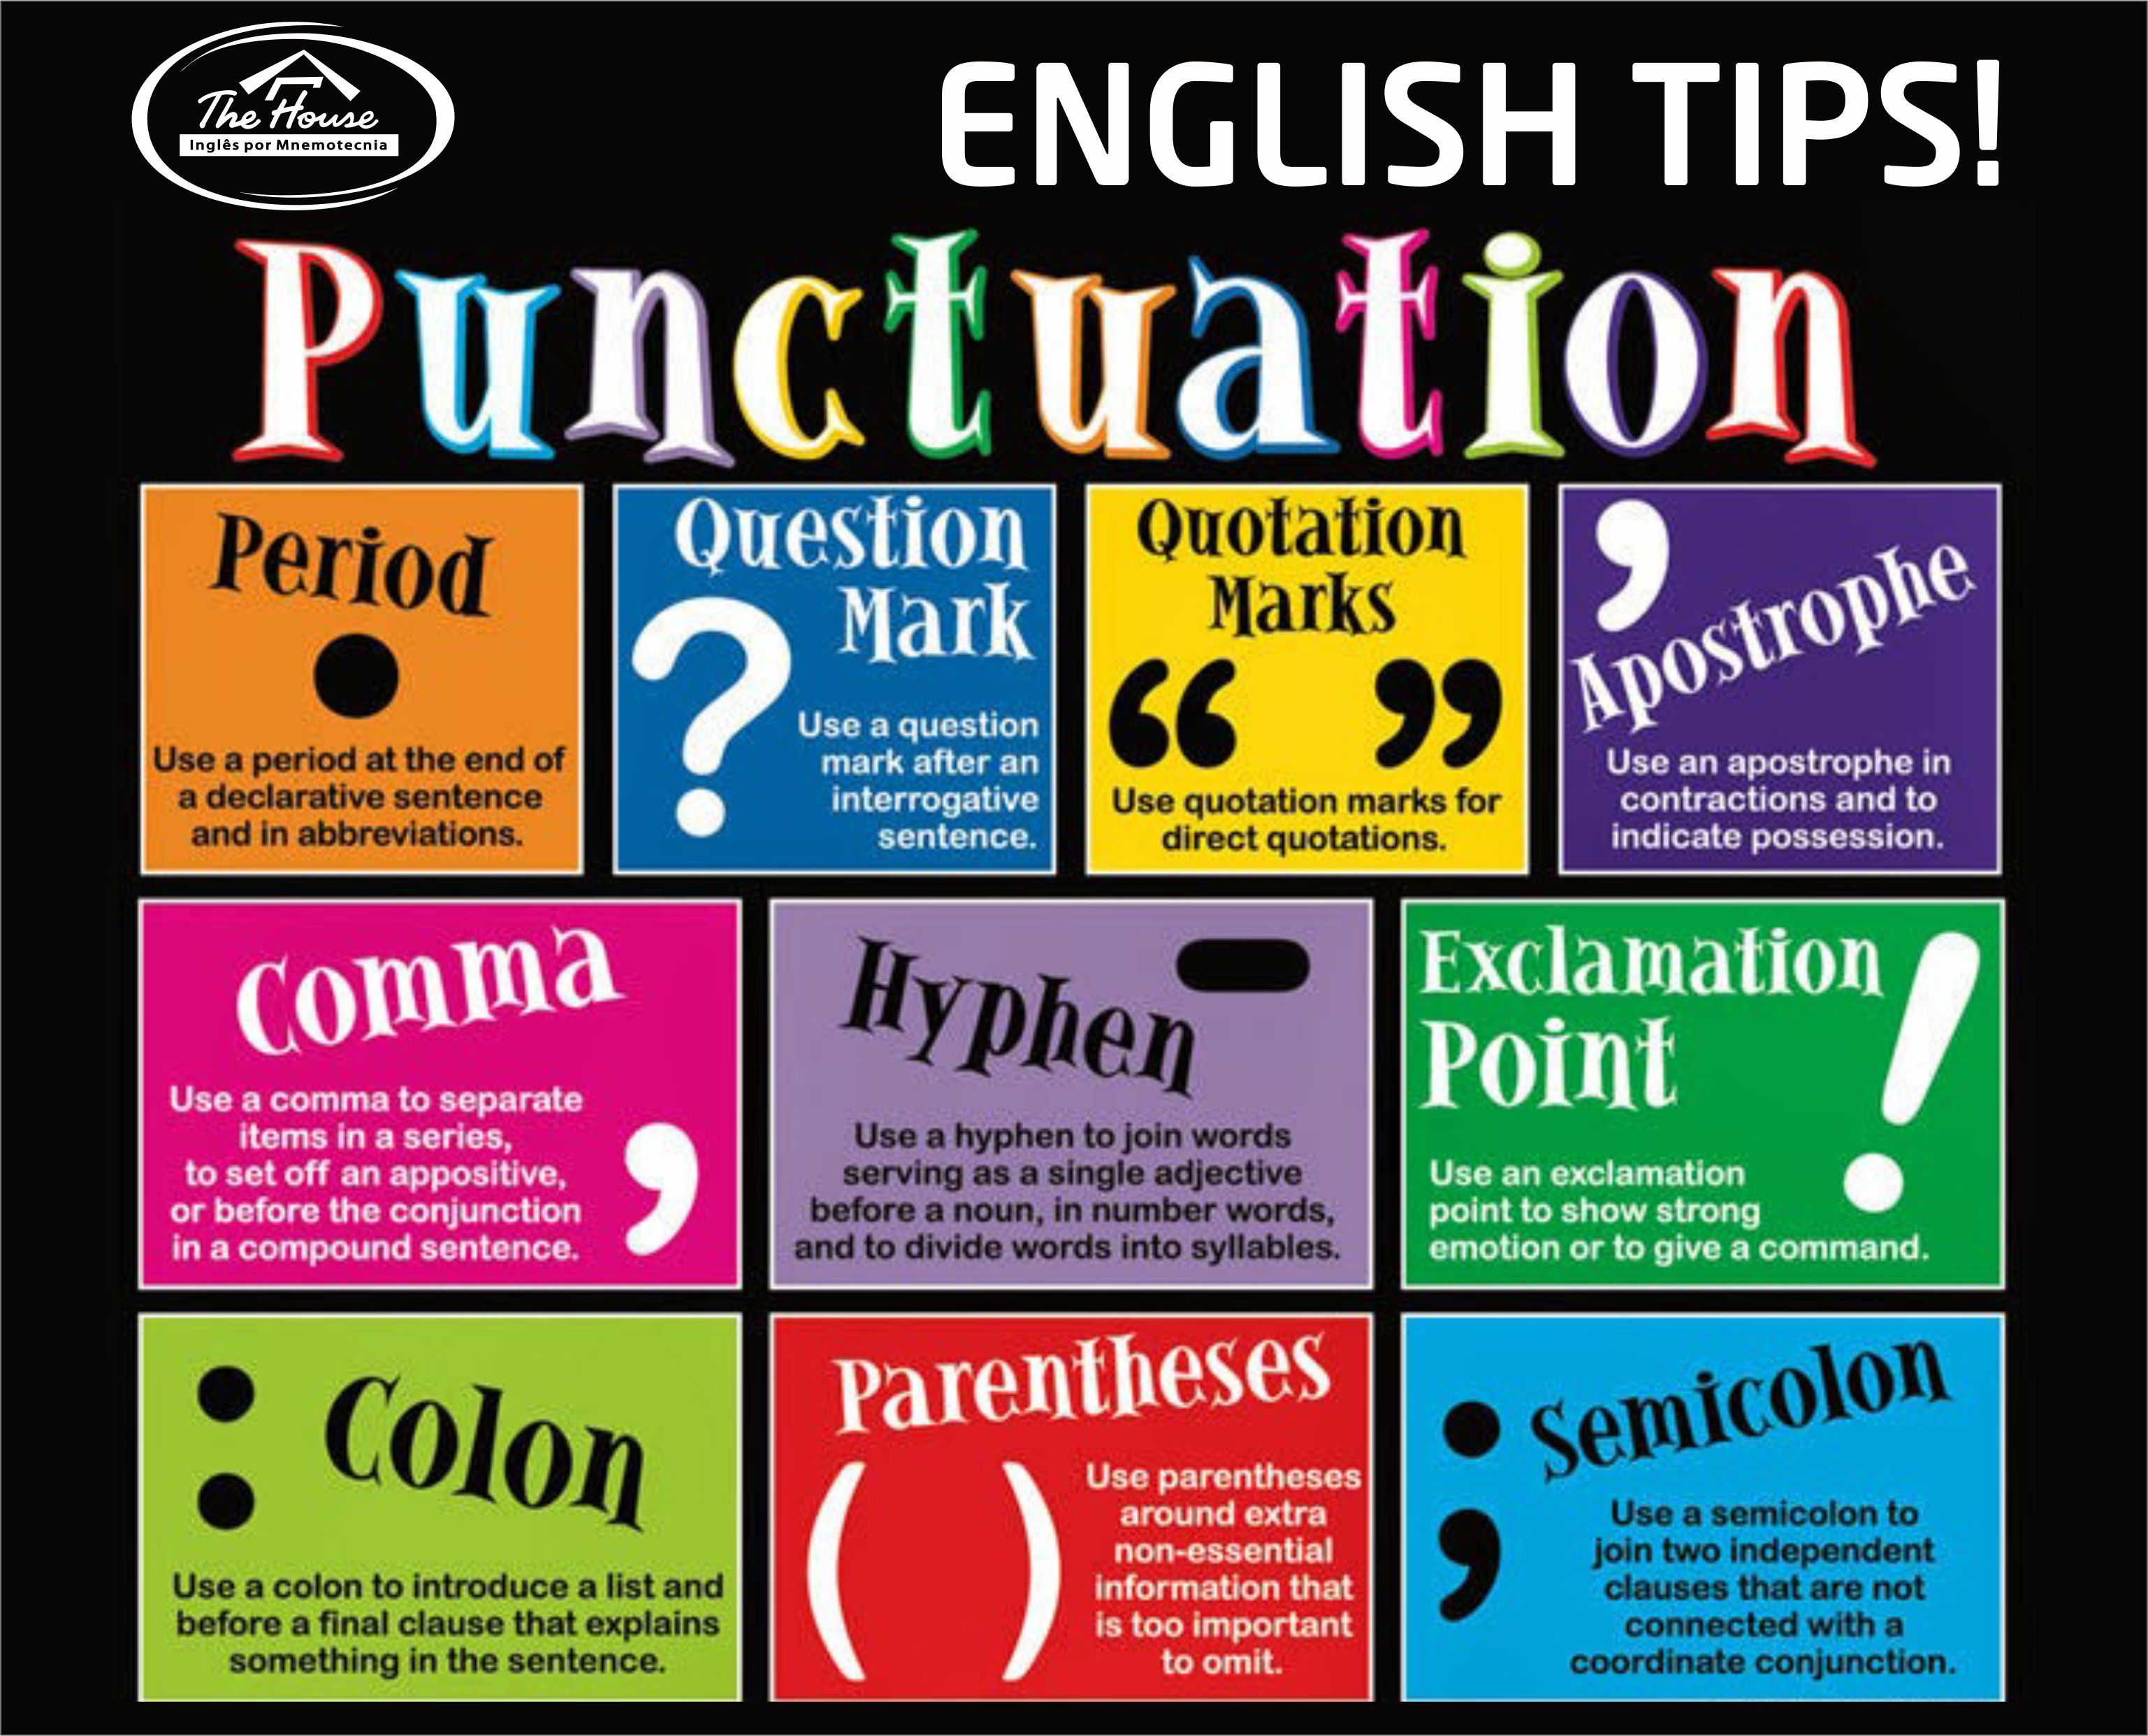 Punctuation in english language tips grammar also yelomdiffusion rh